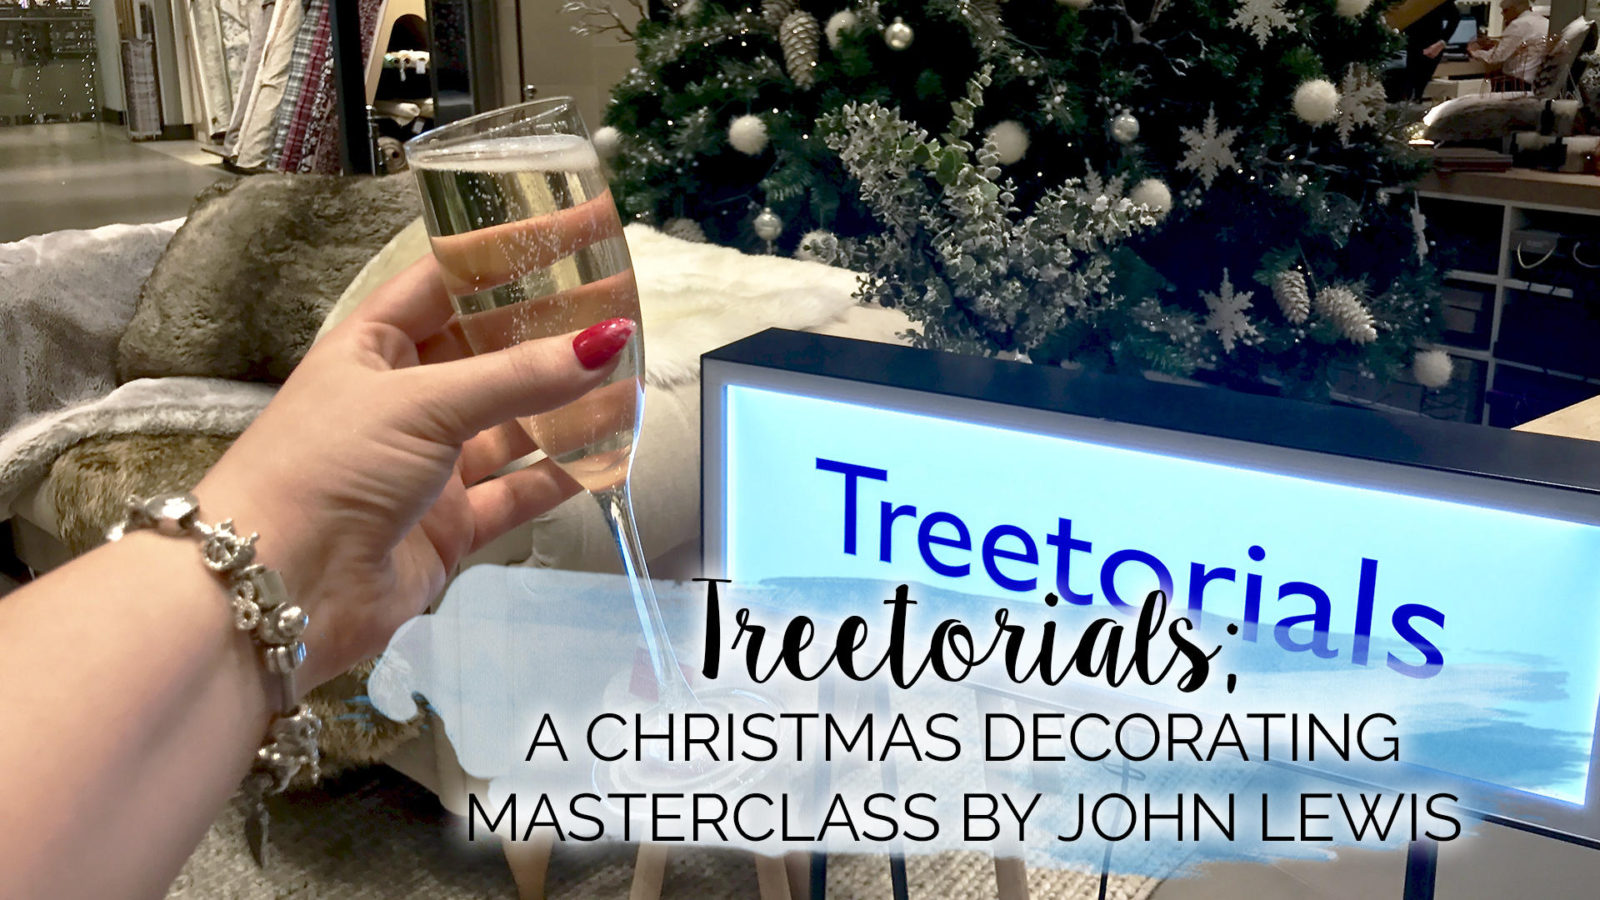 Treetorials, Christmas Decorating Masterclass by John Lewis || Life Lately